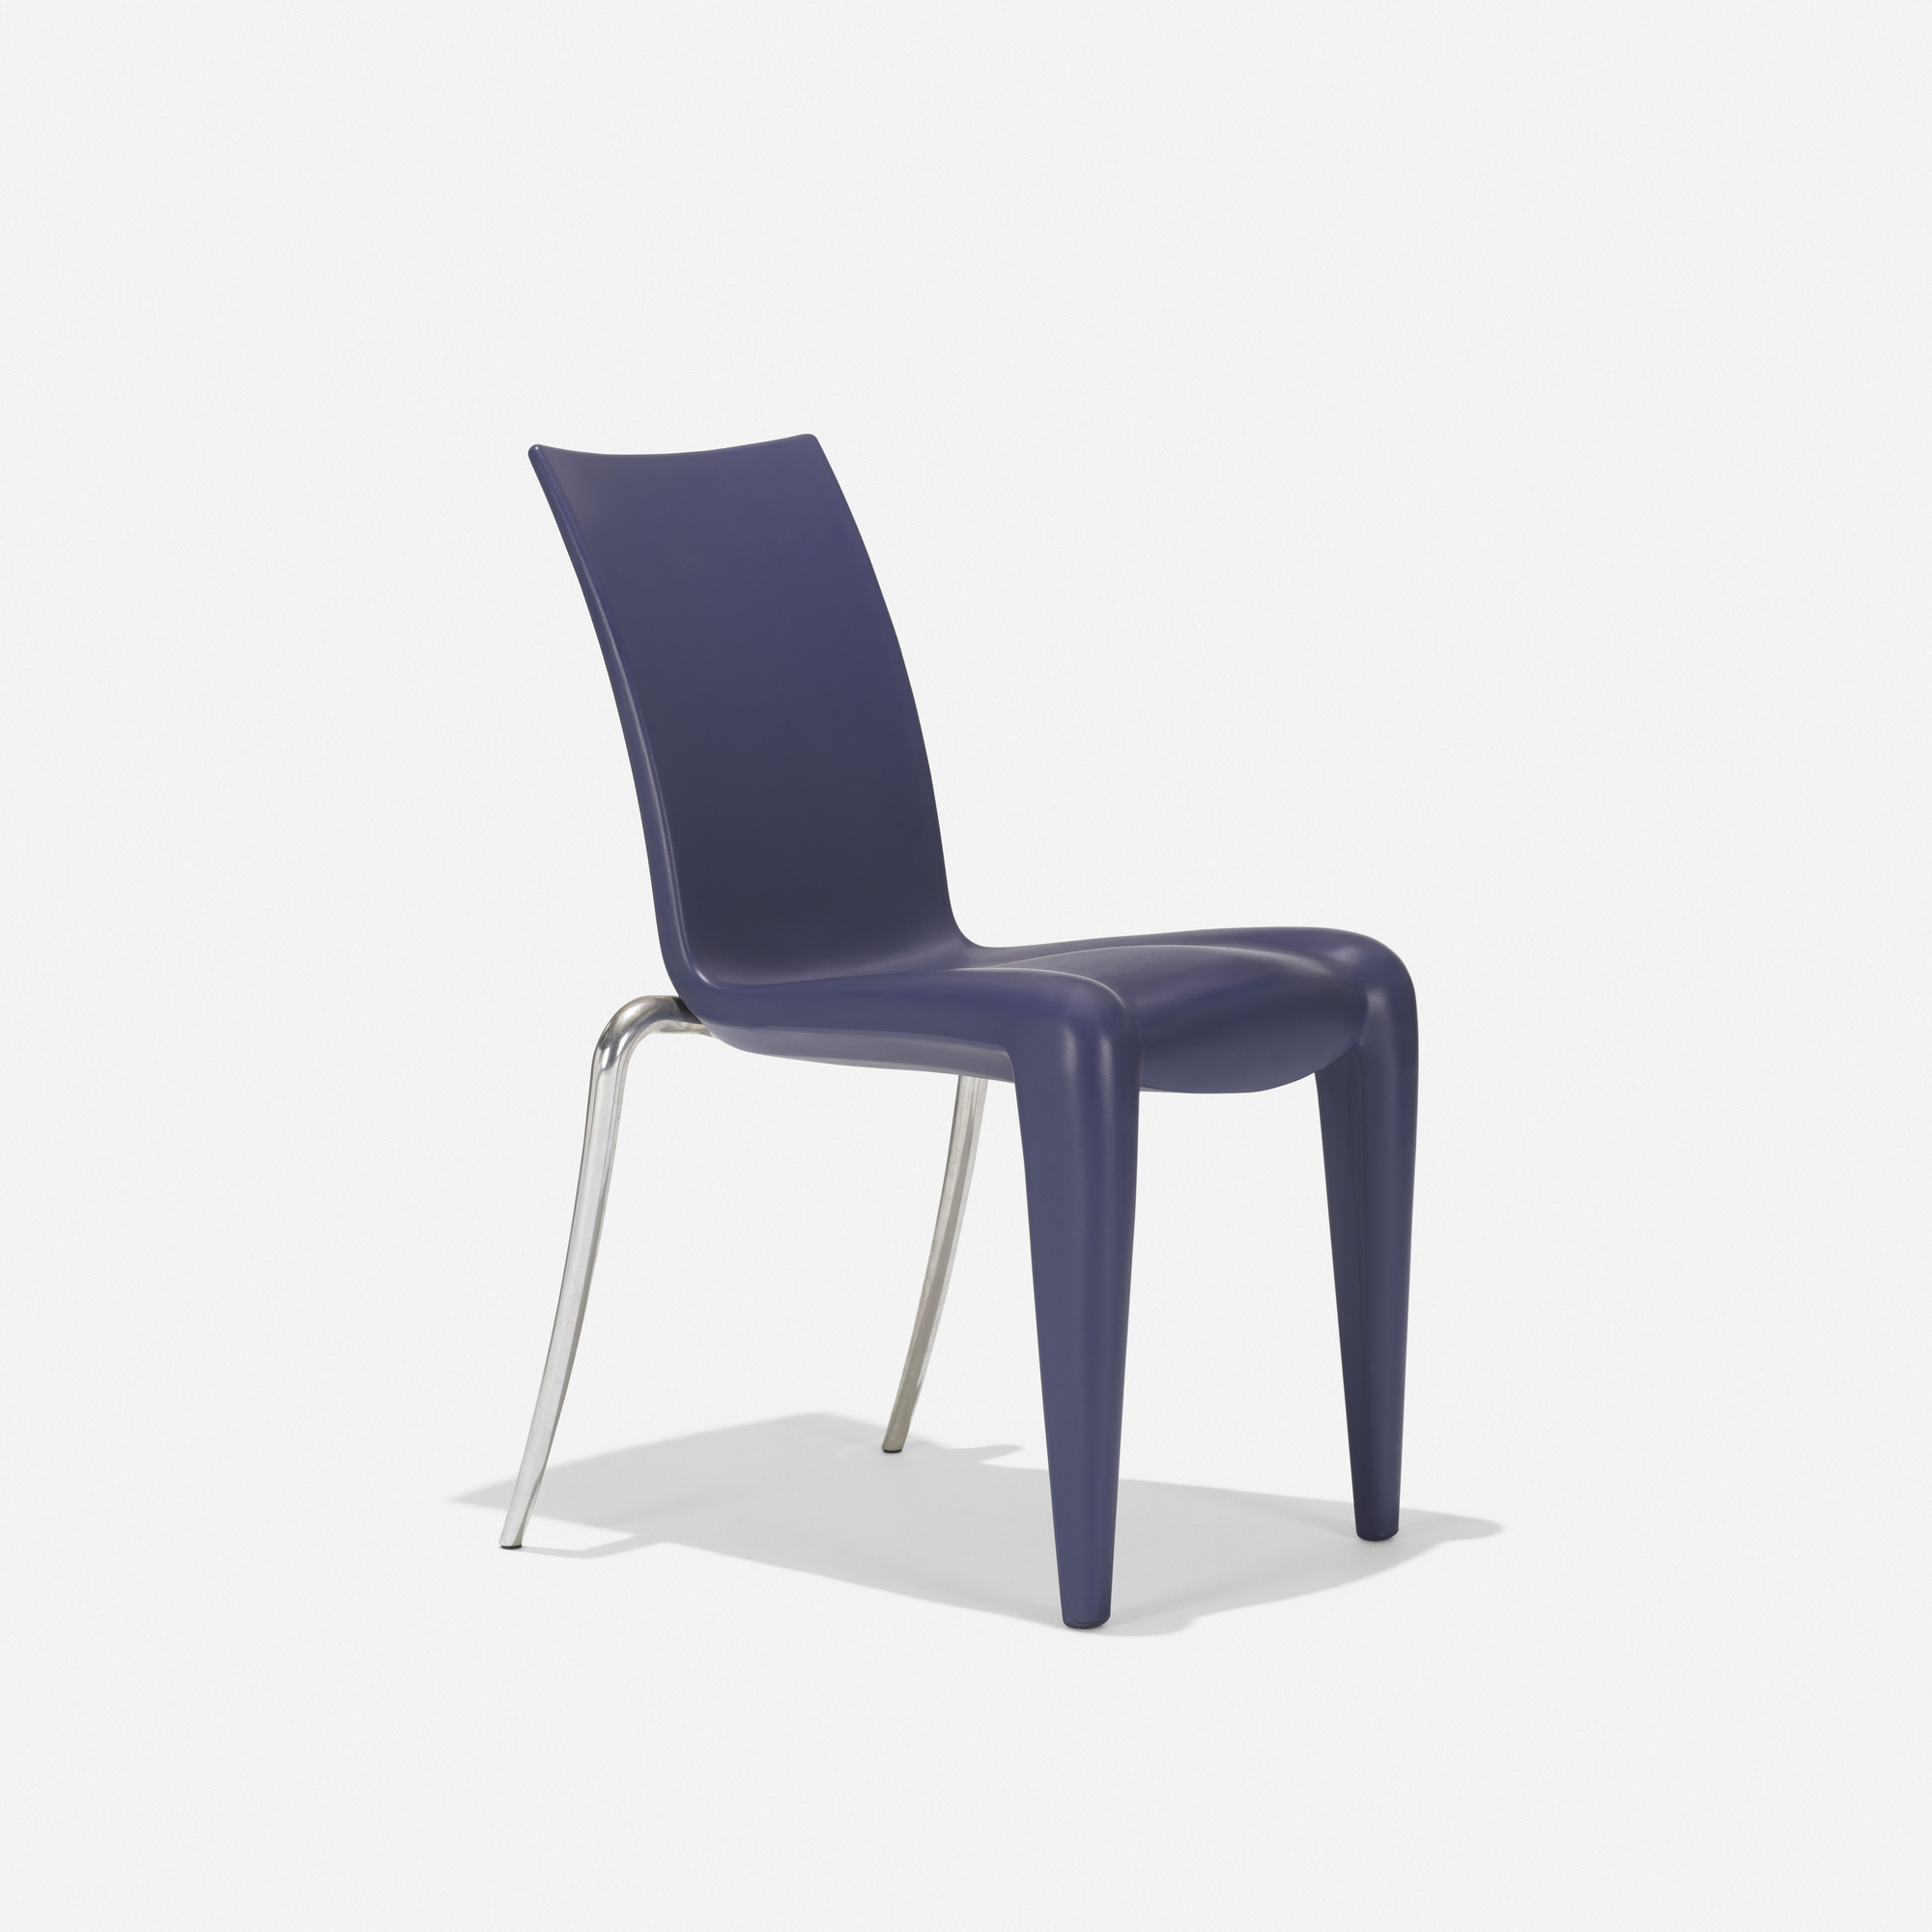 philippe starck louis chair of